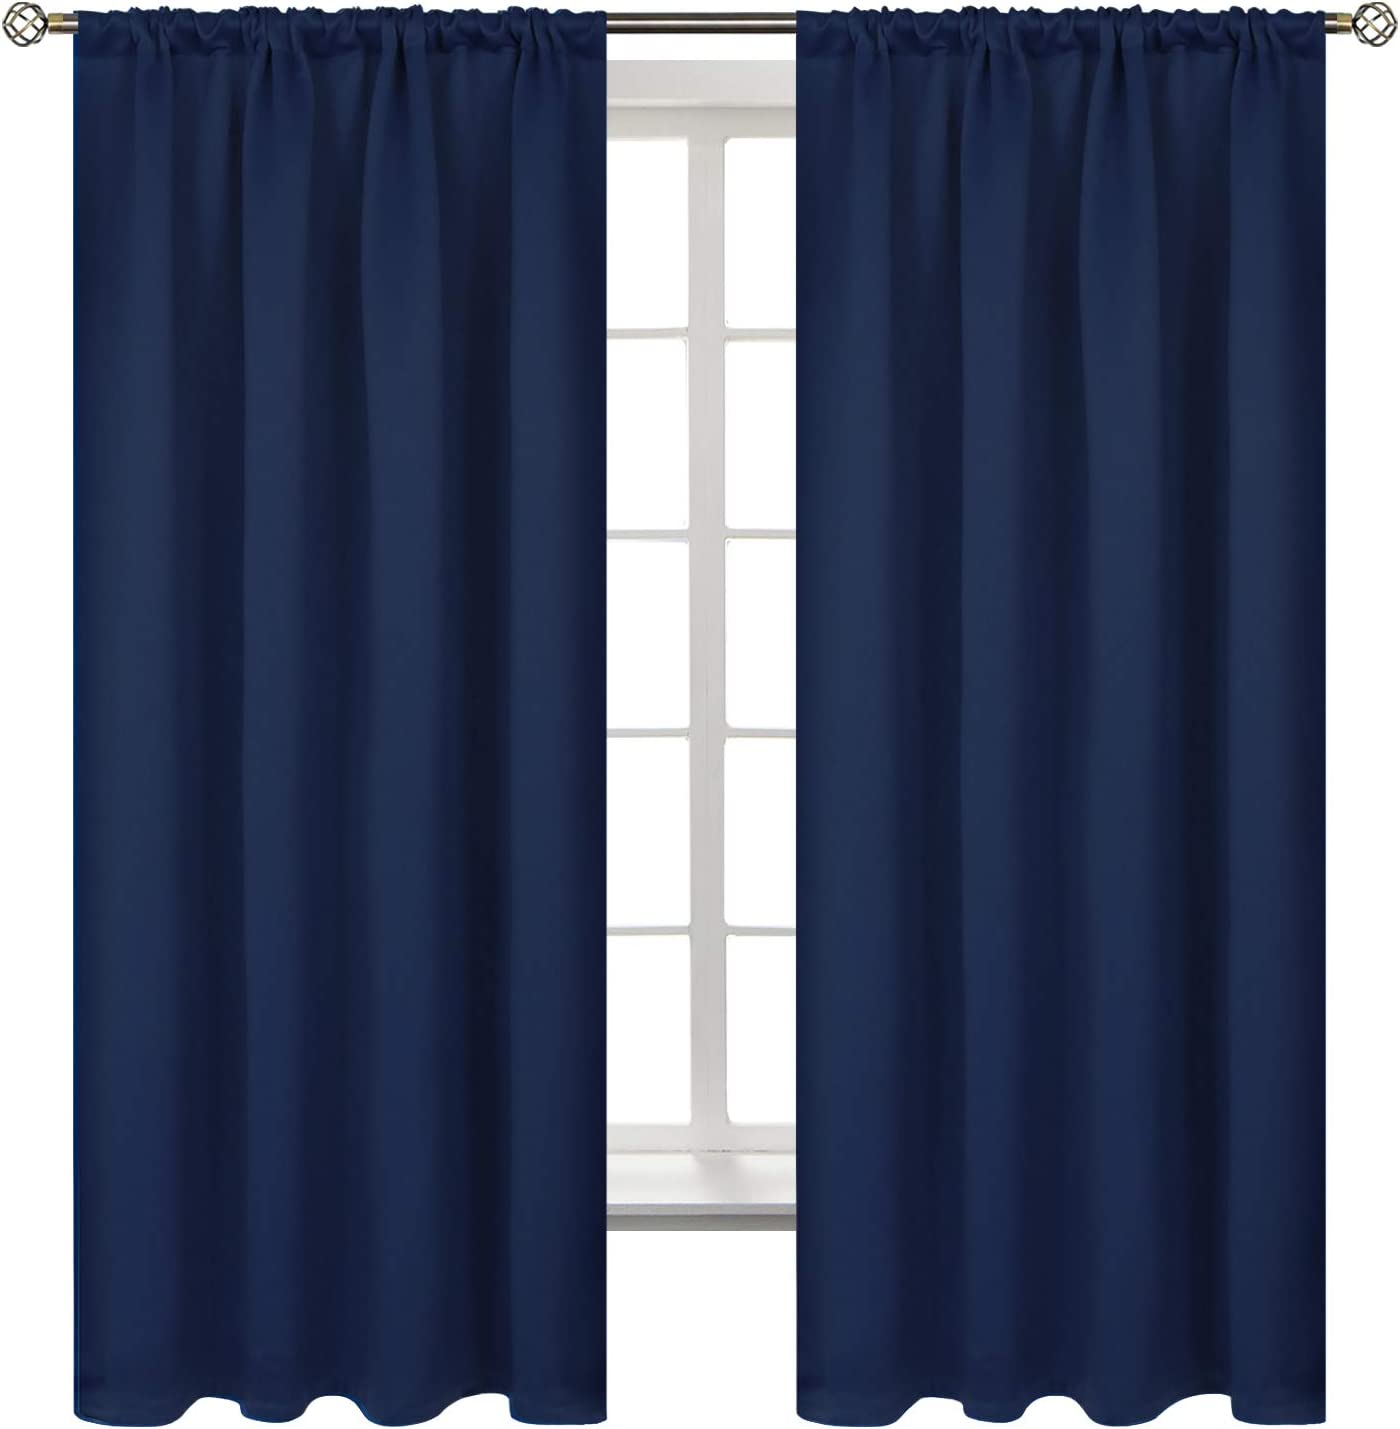 BGment Rod Pocket Blackout Curtains for Bedroom - Thermal Insulated Room Darkening Curtain for Living Room, 52 x 63 Inch, 2 Panels, Navy Blue